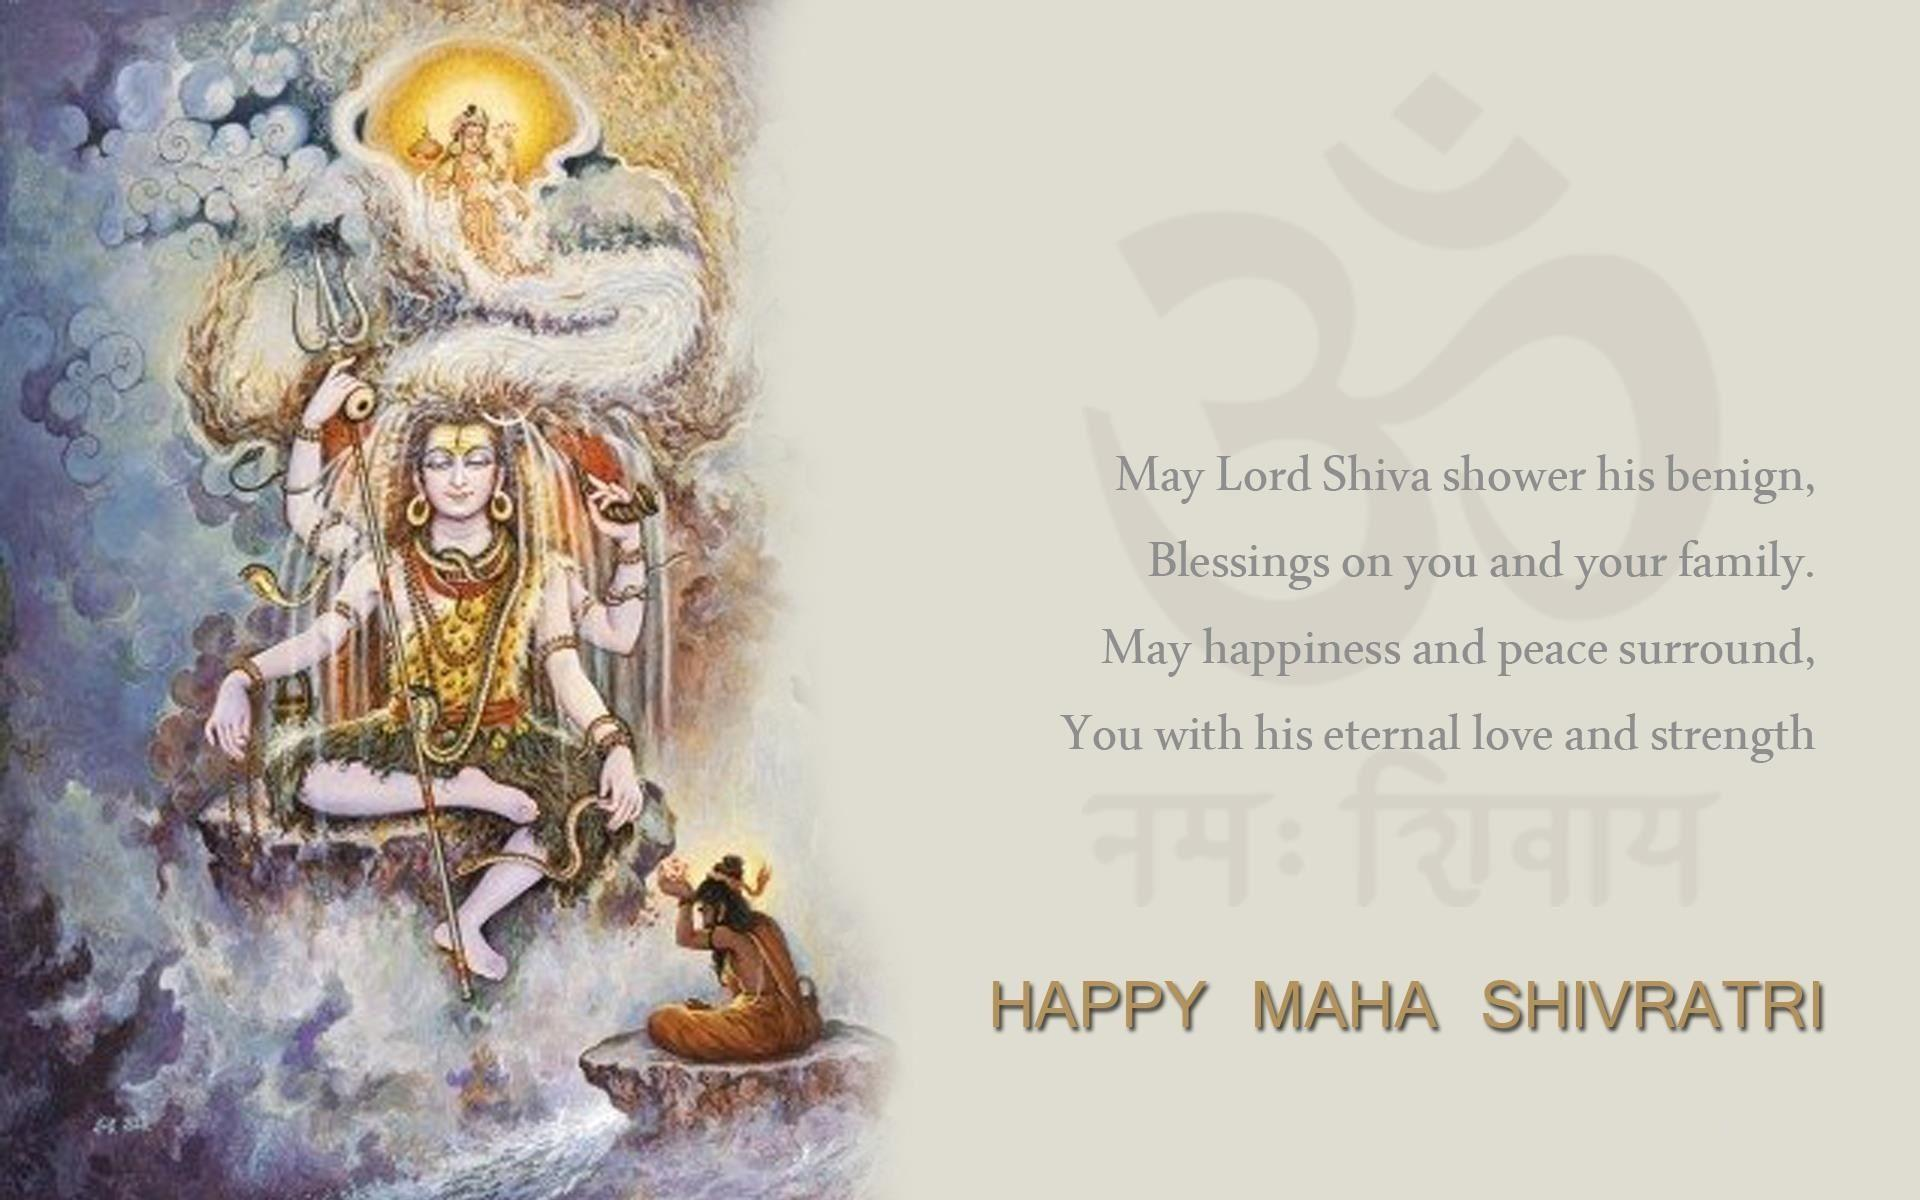 Maha Shivratri Wallpaper 2016